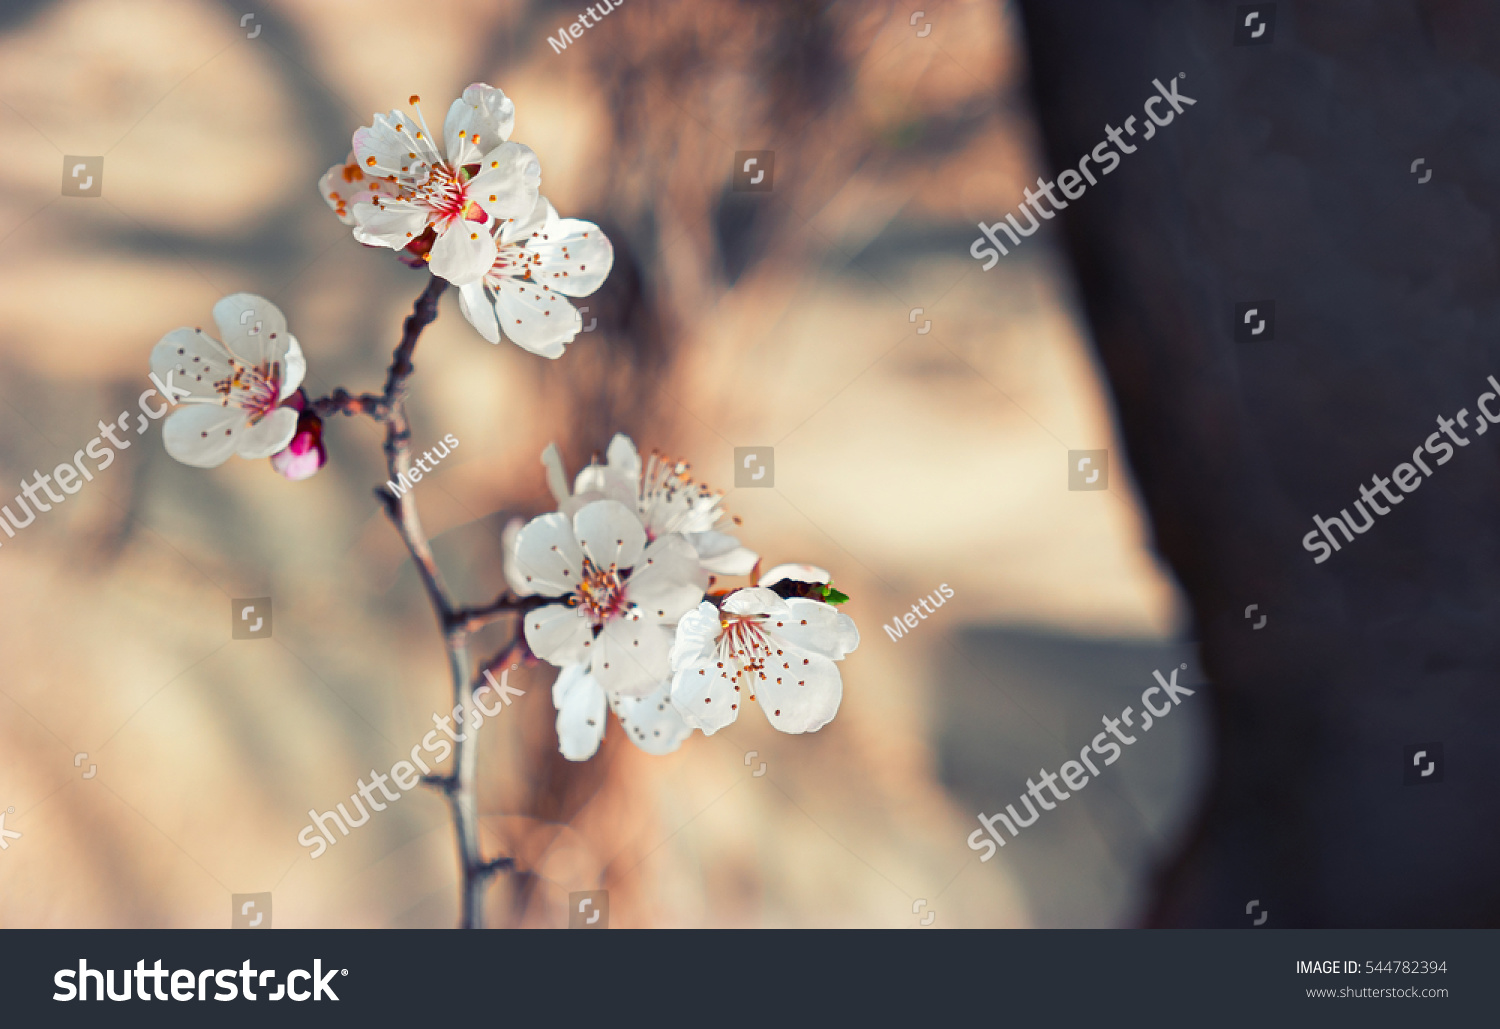 stock-photo-apricot-flowers-on-a-branch-